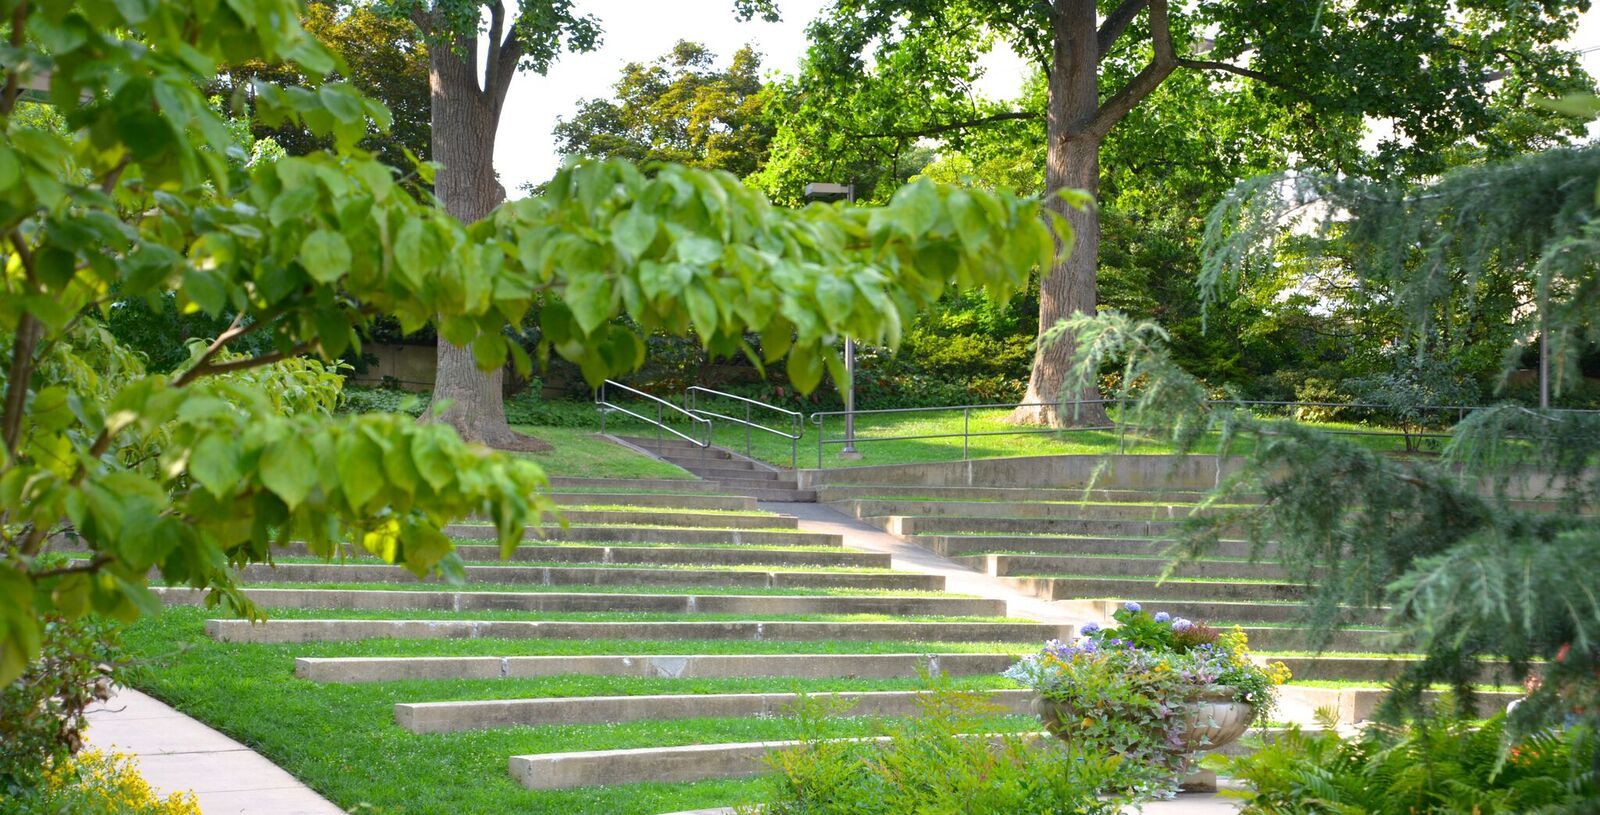 Woods Brown Amphitheatre